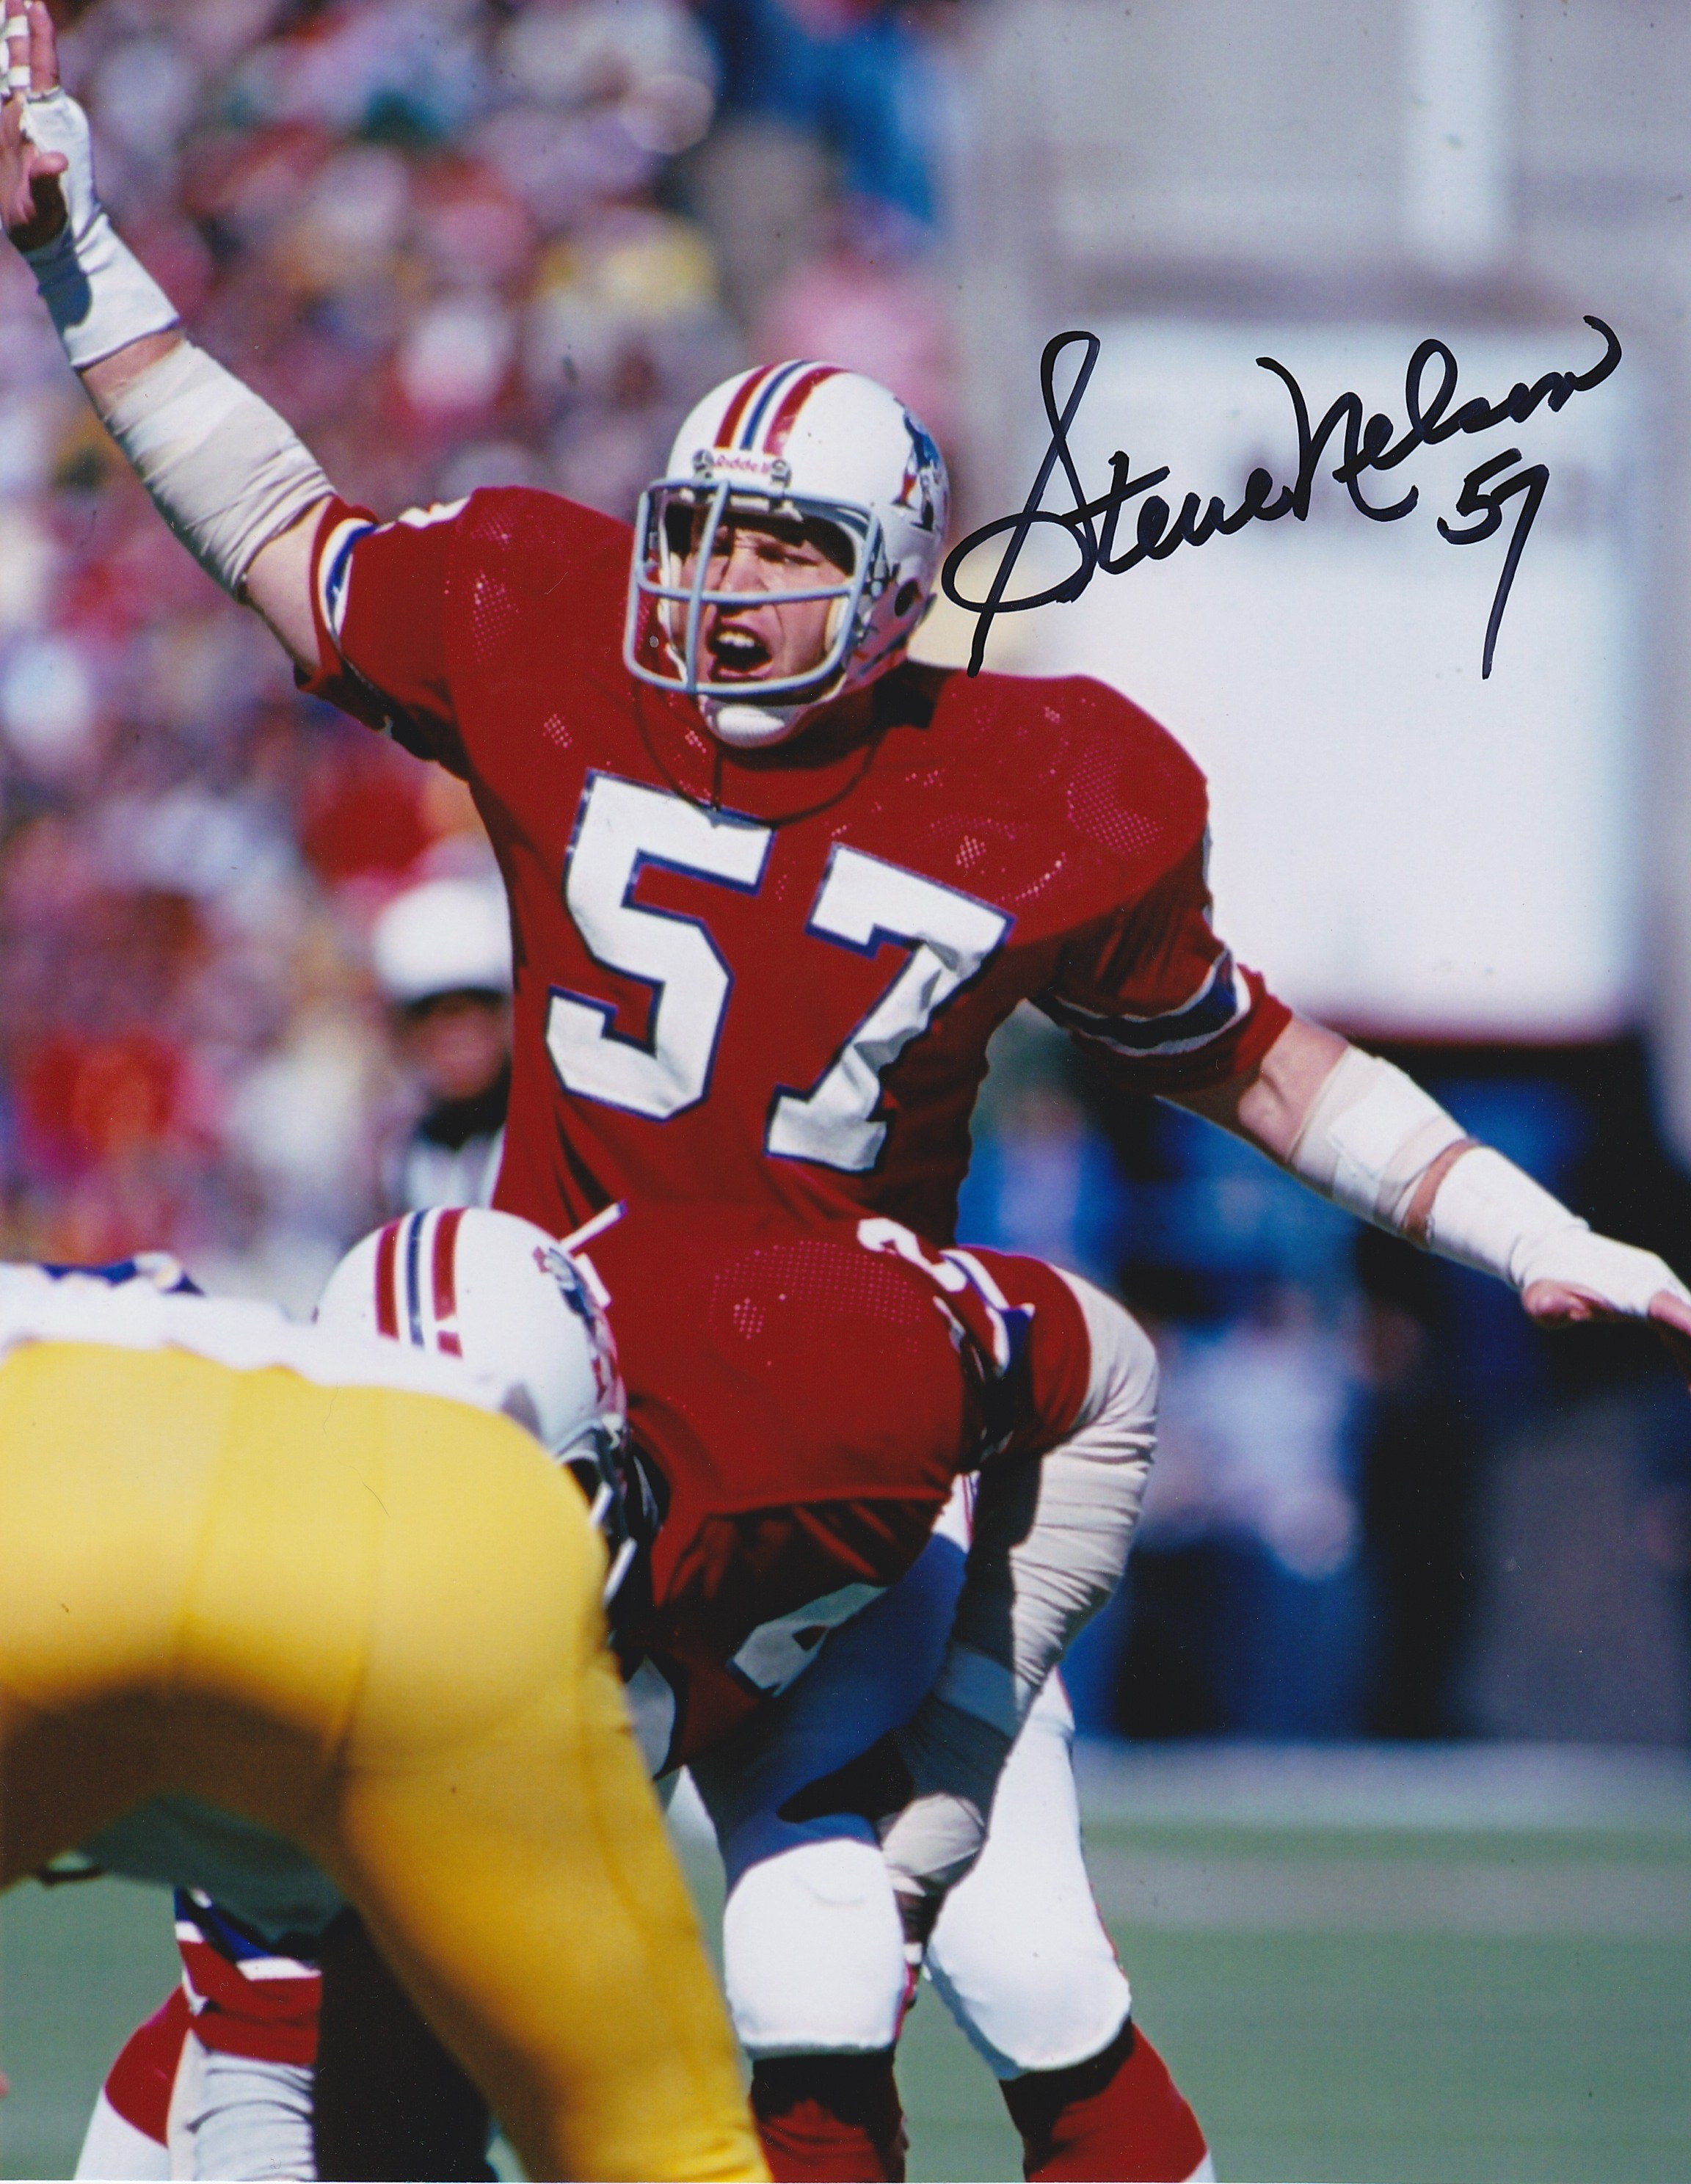 Steve Nelson Autograph 8x10 Color photo New England Patriots